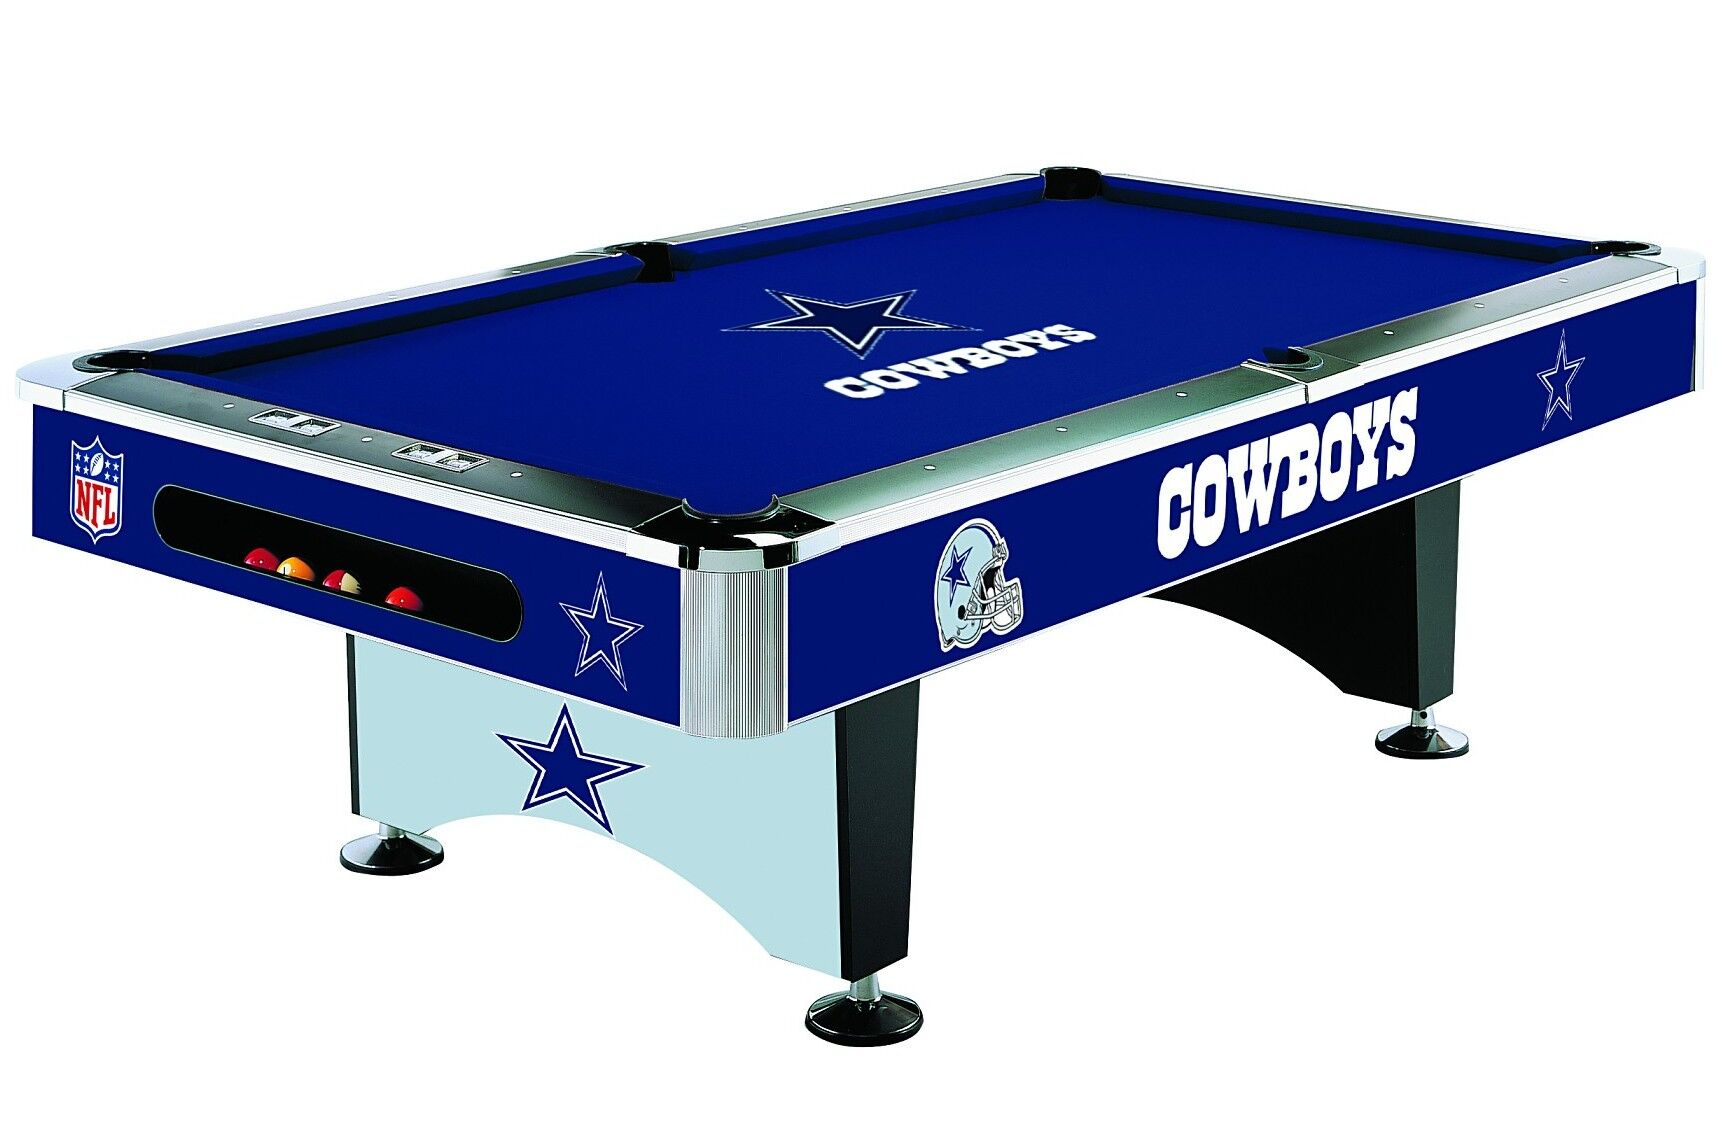 A Diehard Cowboy Fans' Christmas Wish List Pool Table. Glass Patio Table. Herman Miller Conference Table. Best Adjustable Desk. Wine Barrel Coffee Table. Glass White Desk. Cribs With Drawers. Dining Table Pool Table. Cpu Desk Mount